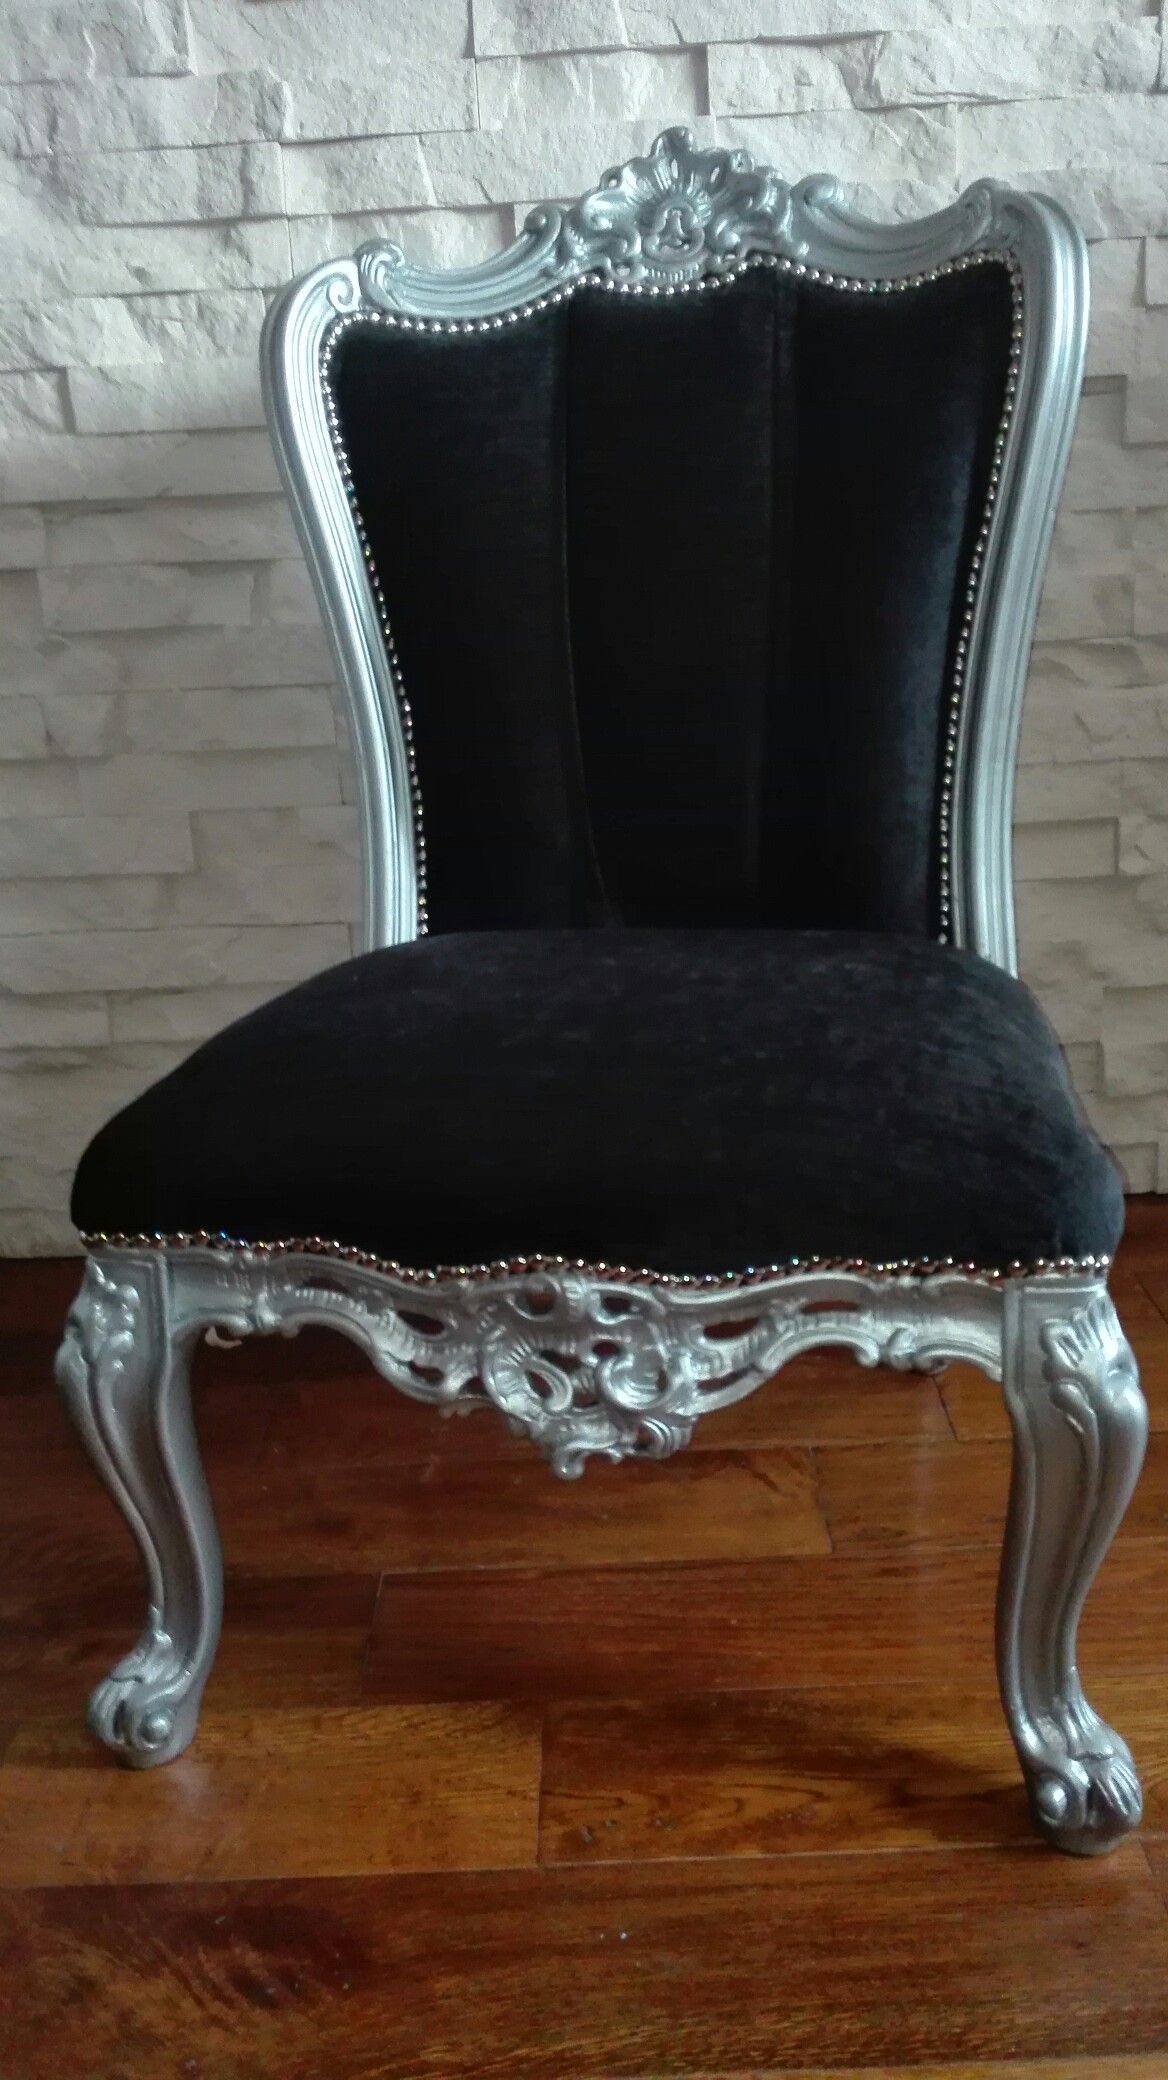 ELEGANT bedroom Chair Armchair. Refurbished. The ArmChair have been ...